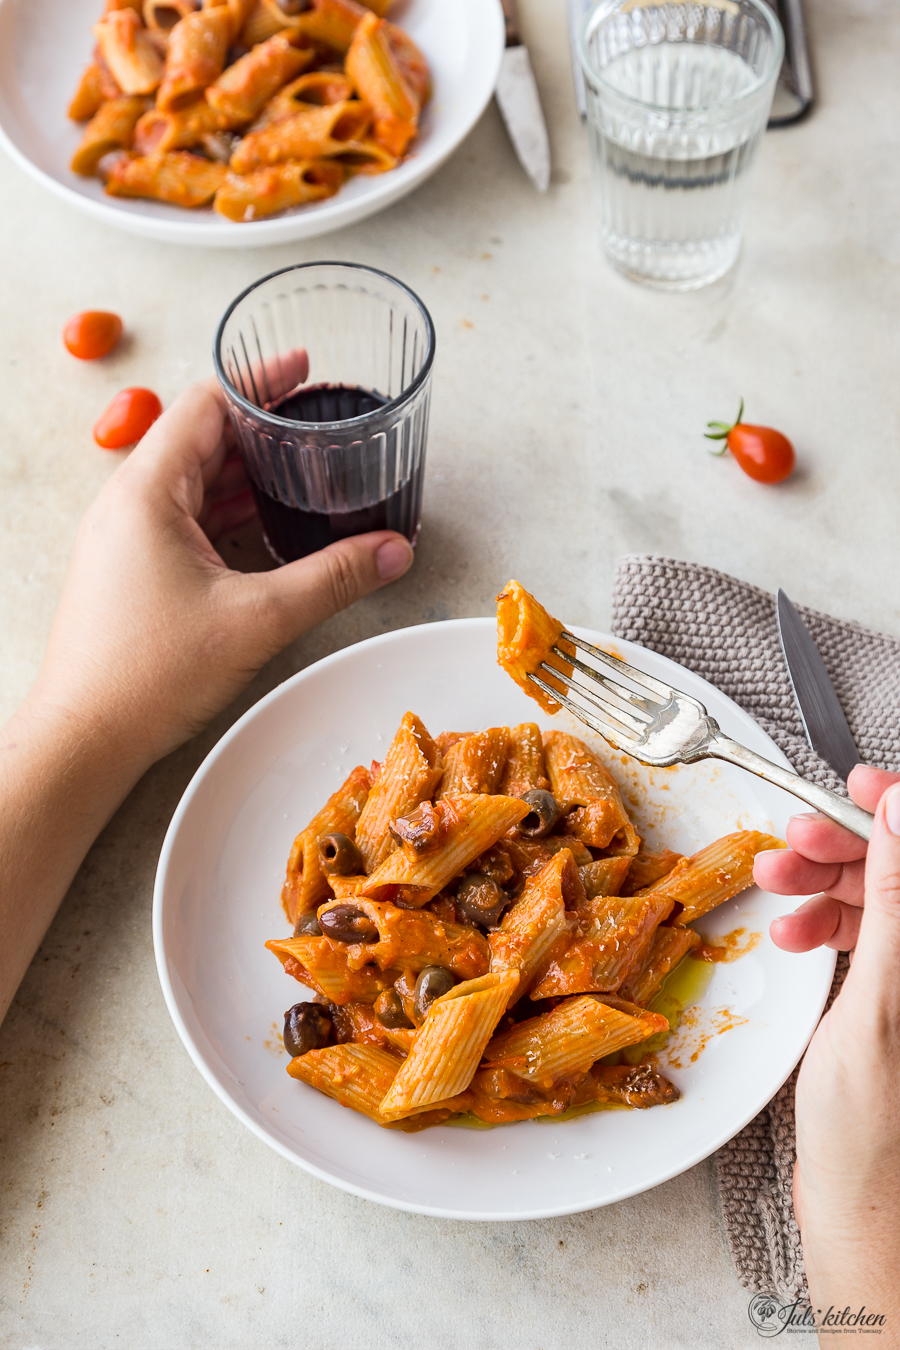 Pasta with tomato sauce, guanciale and olives + A Saveur nomination!